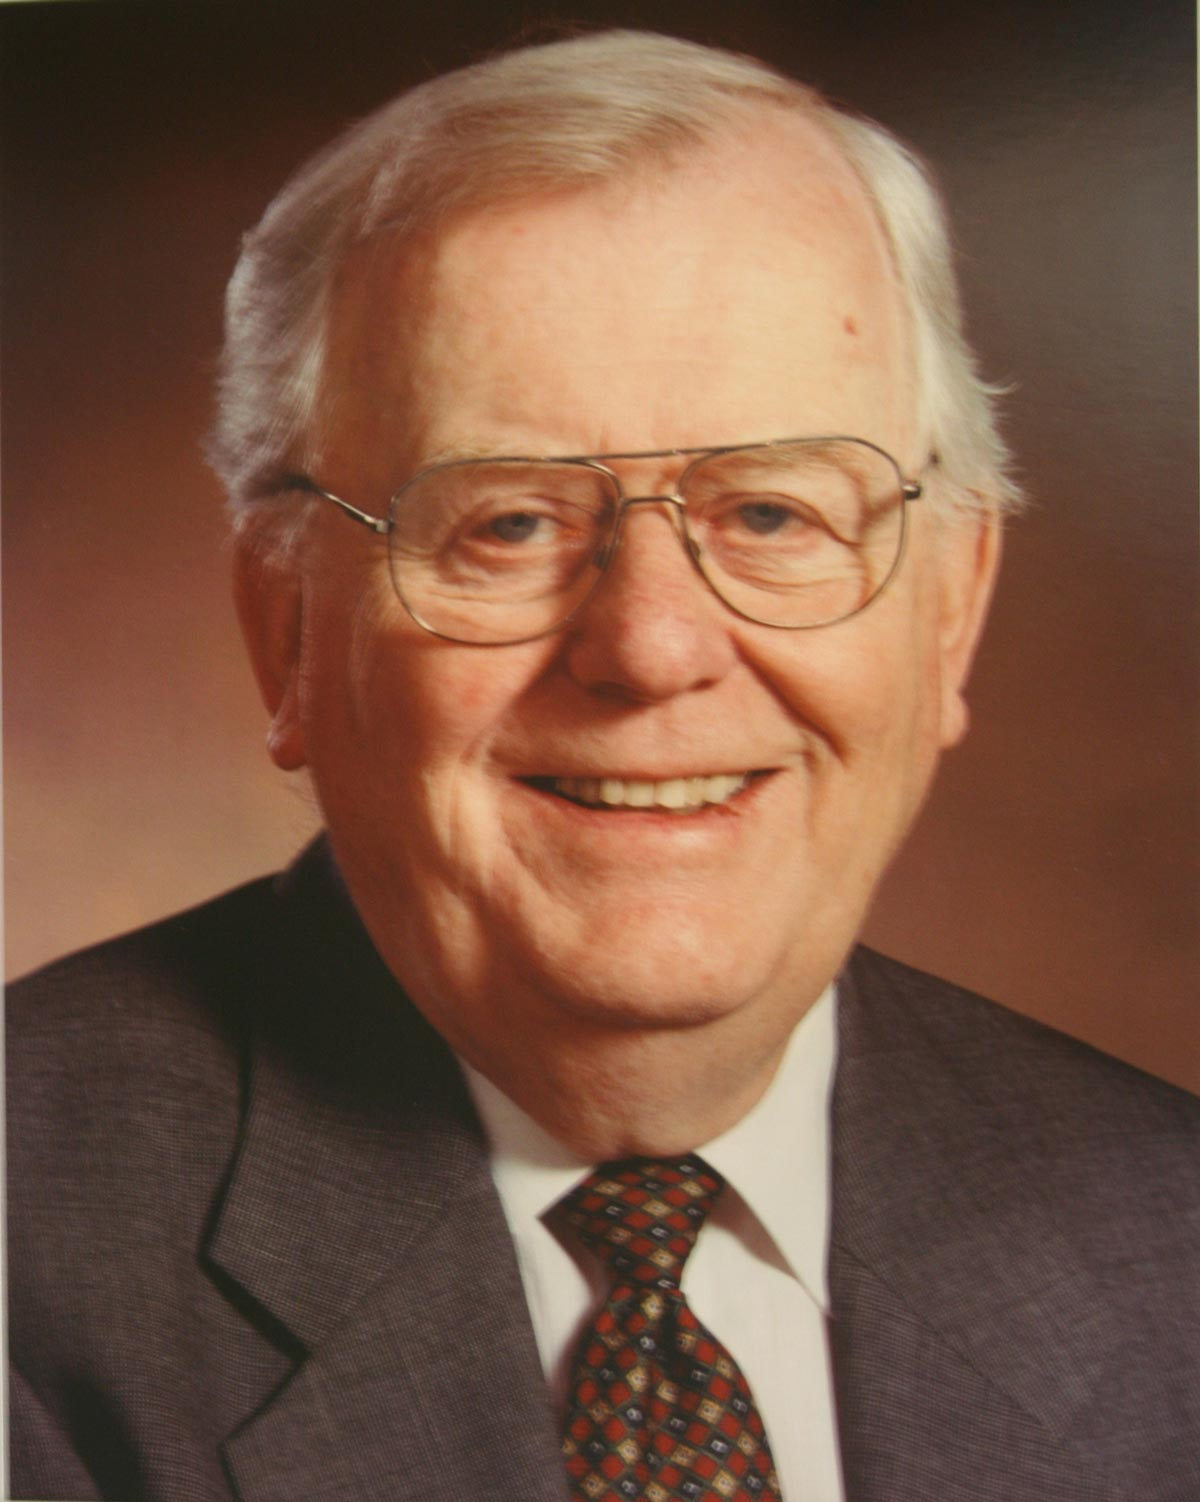 Robert J. Crawford